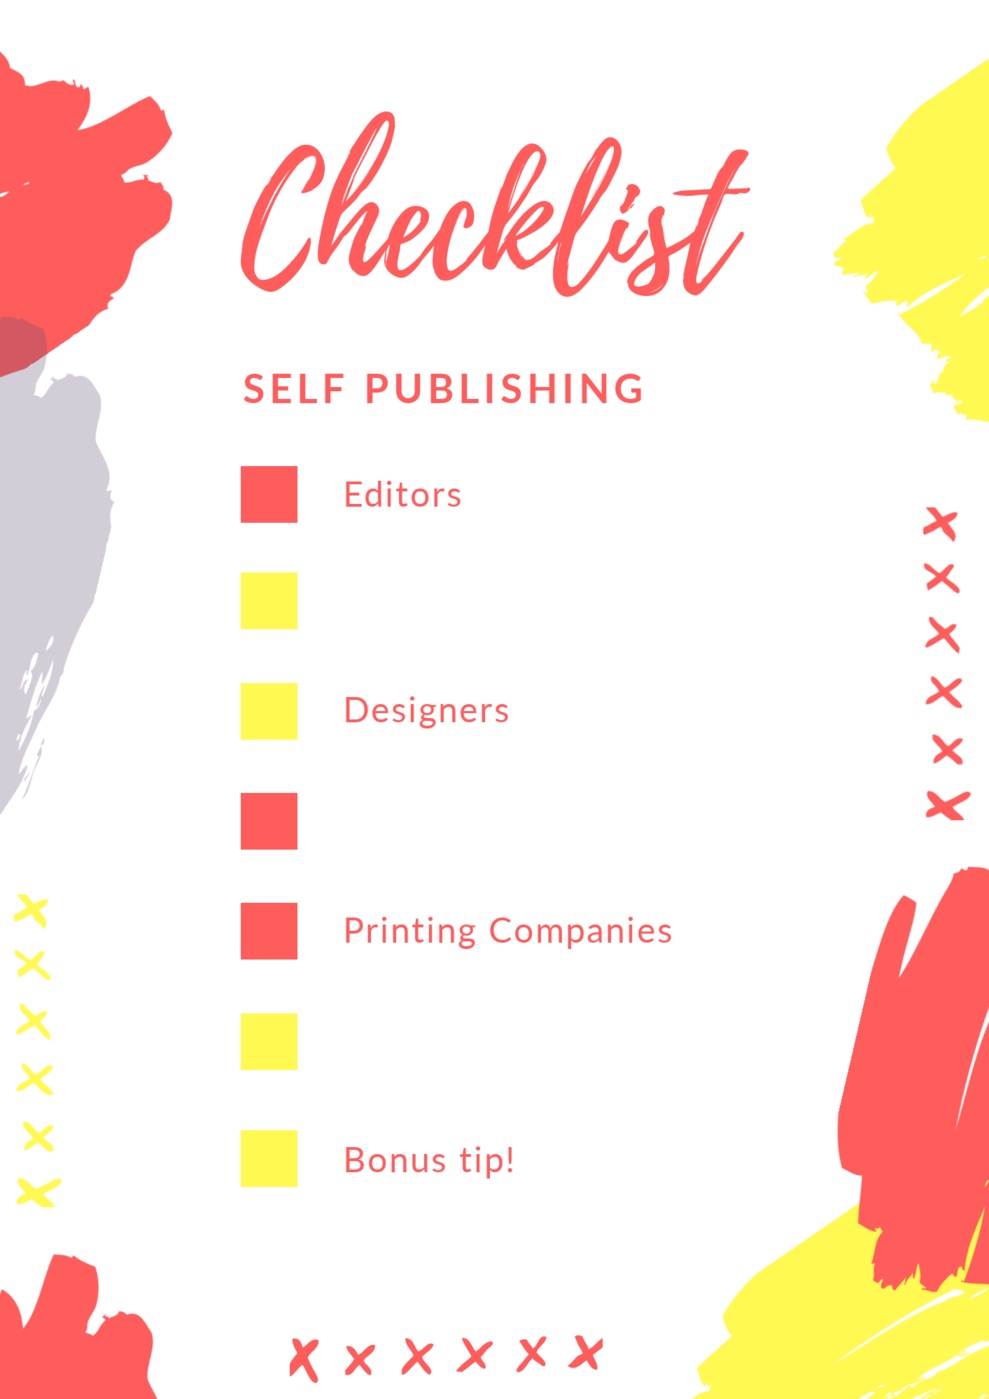 How to self publish and make money 2020